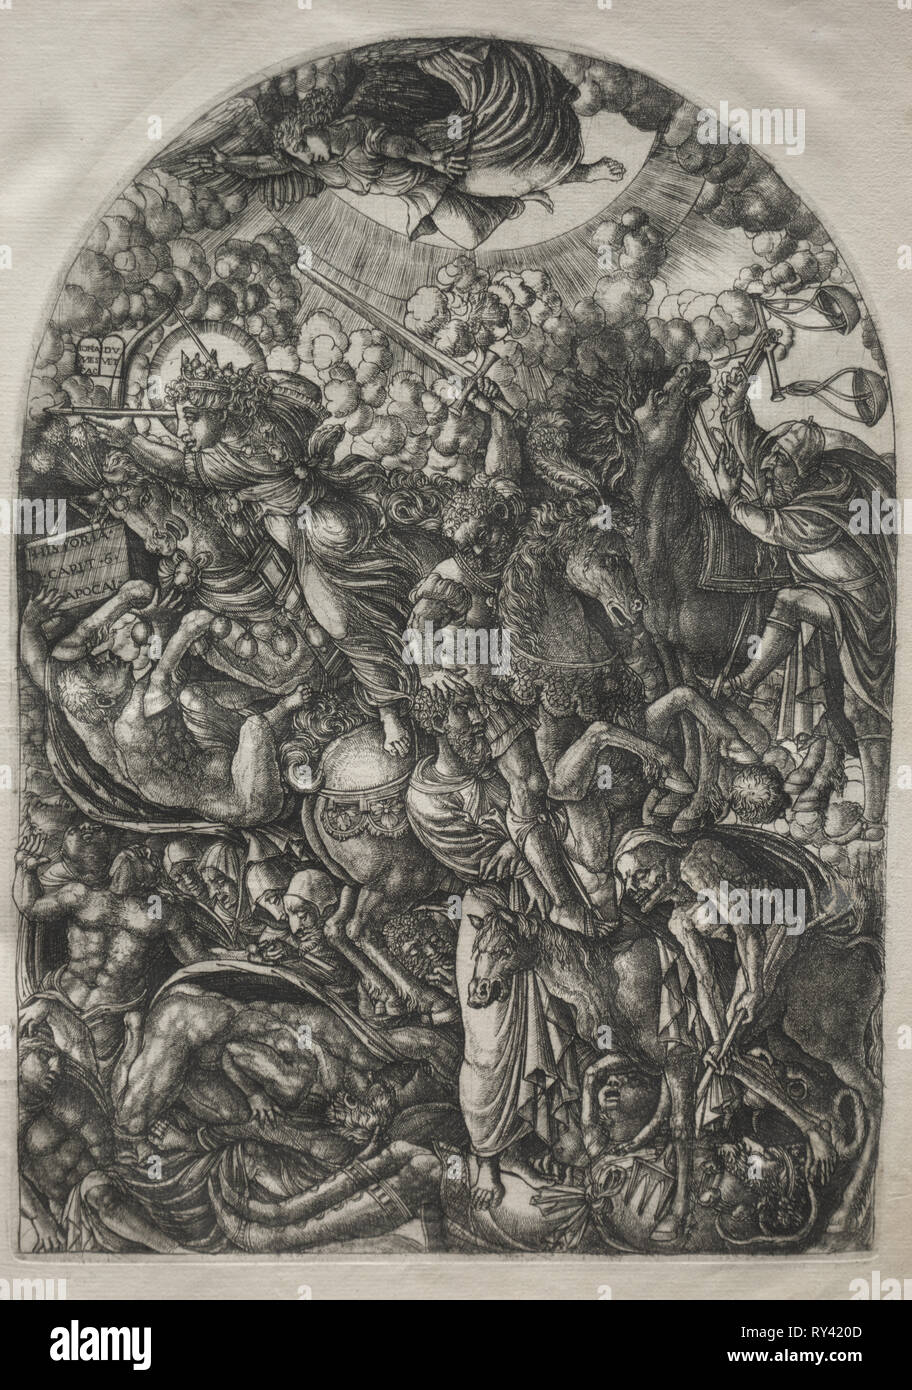 The Apocalypse:  St. John Sees the Four Riders, 1546-1556. Jean Duvet (French, 1485-1561). Engraving - Stock Image